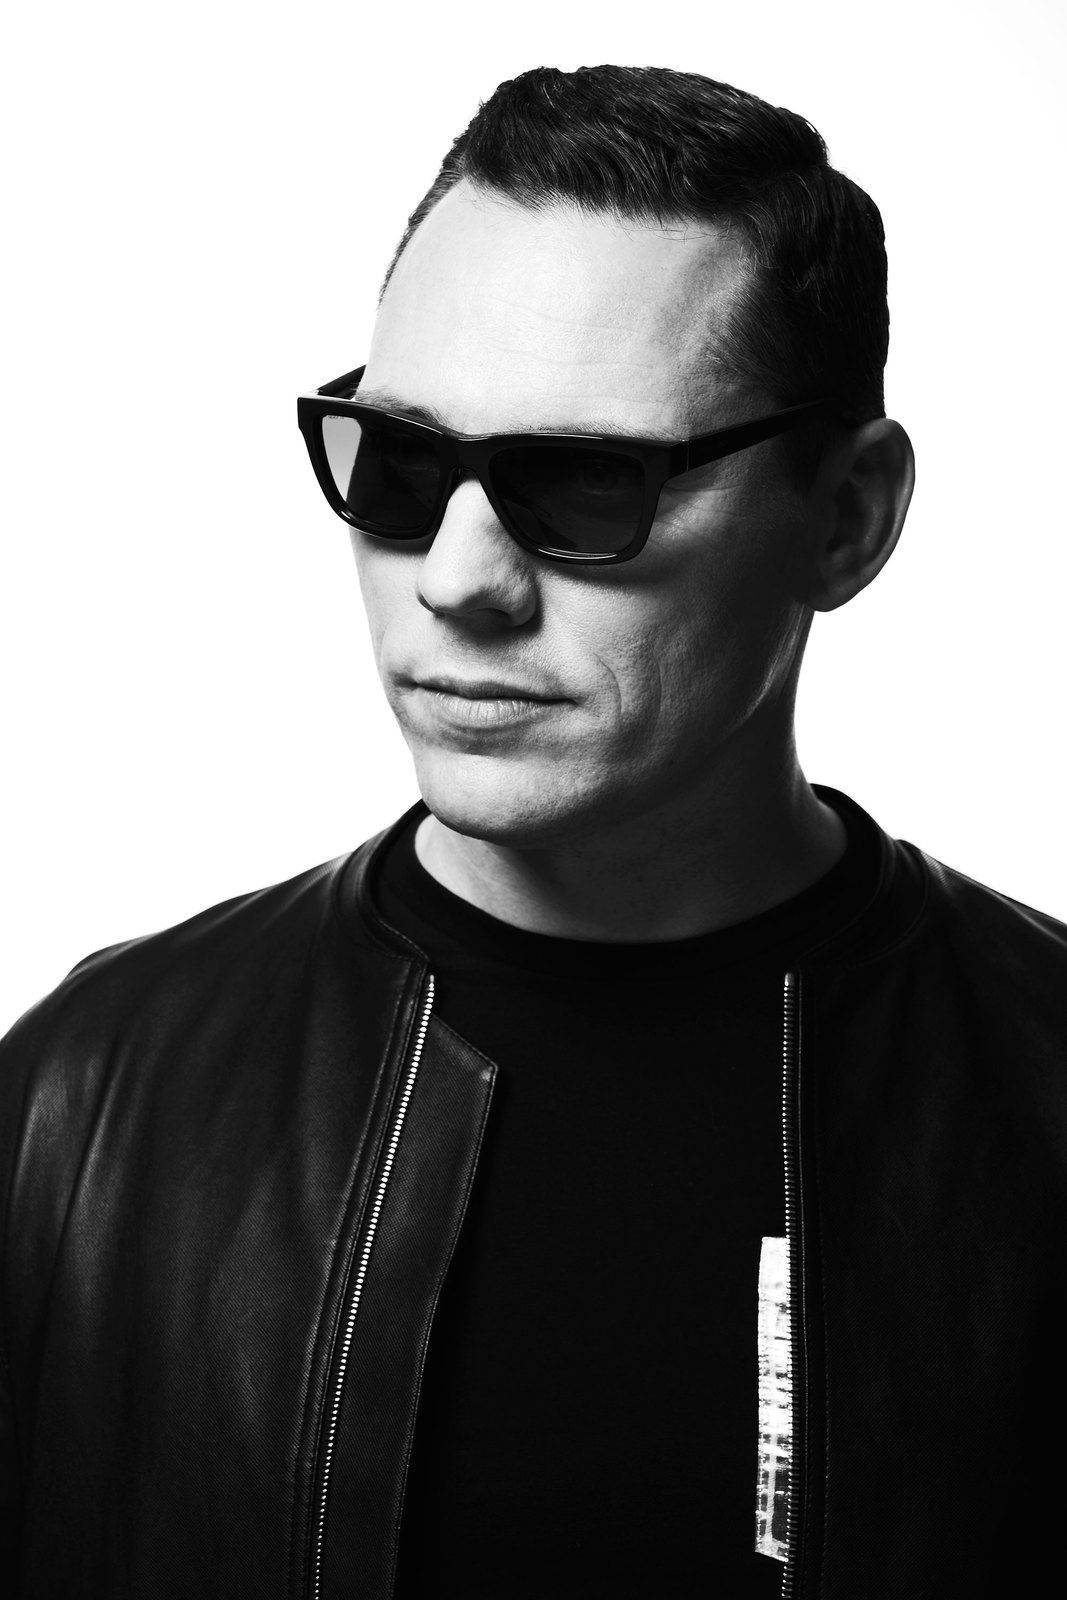 Tiësto wears a jacket by Alexander Wang, t-shirt by Mugler, jeans by Balmain, sunglasses by Giorgio Armani